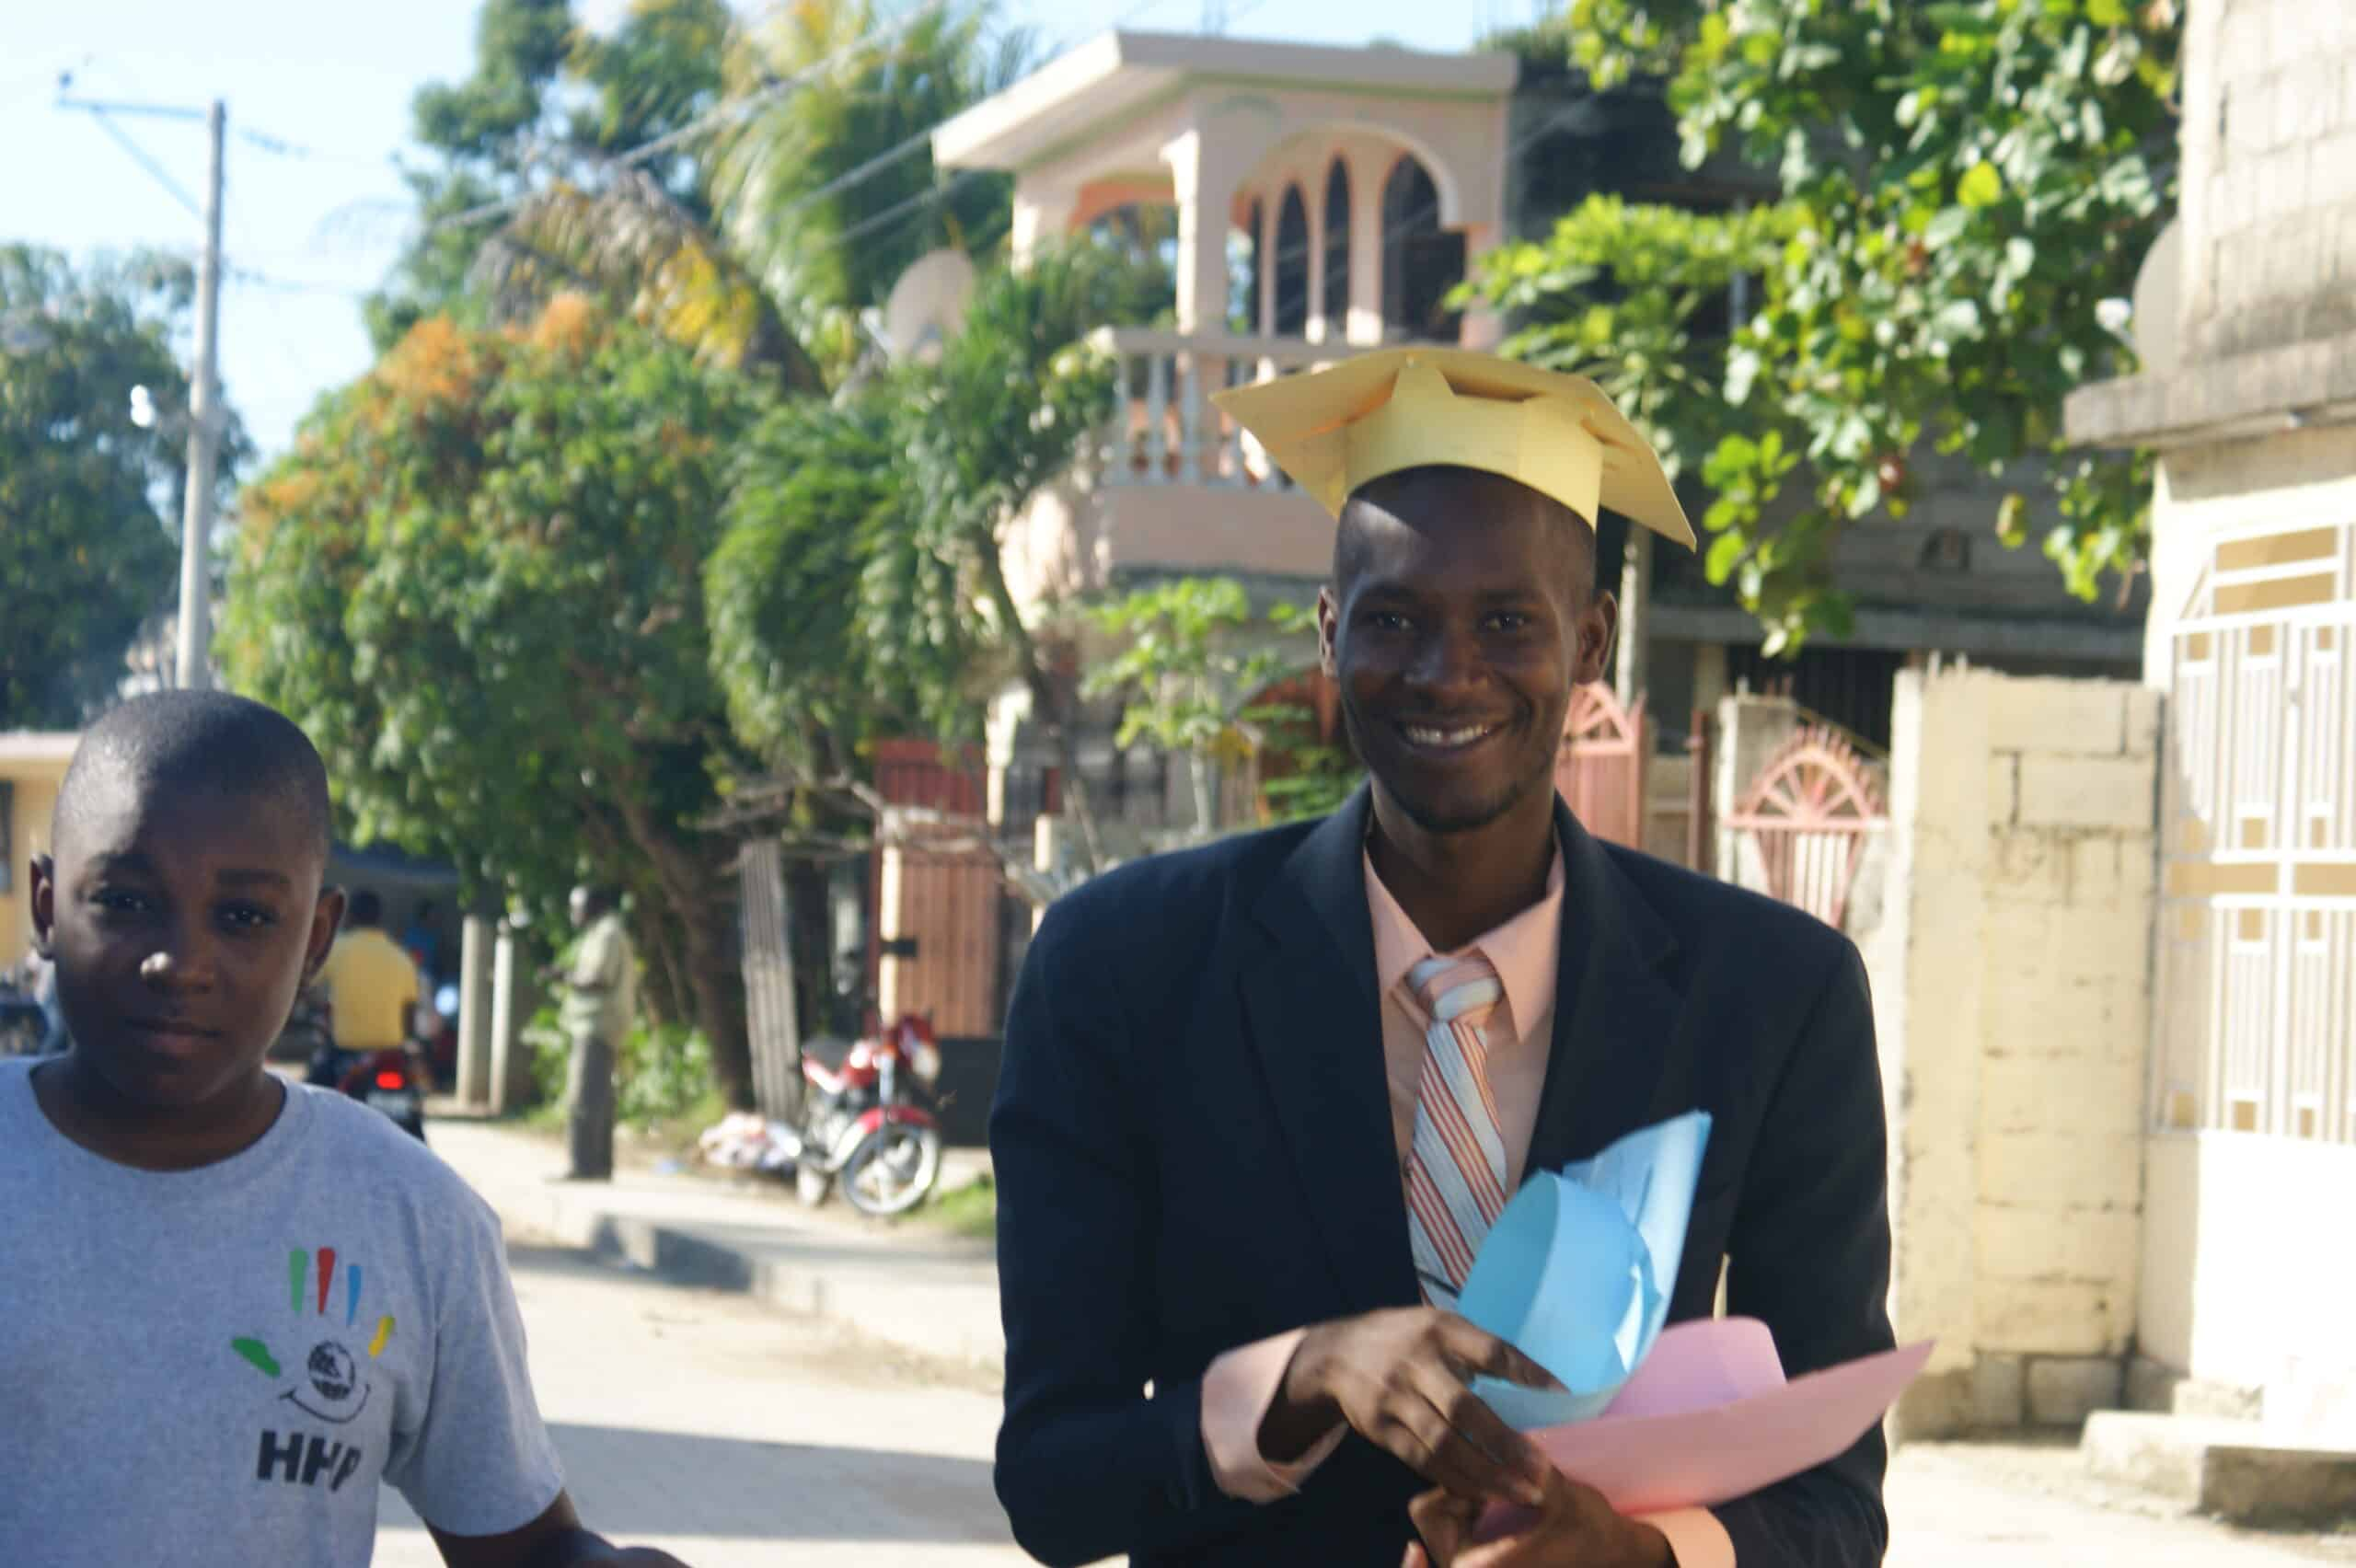 Two students prepare for graduation by distributing caps to others